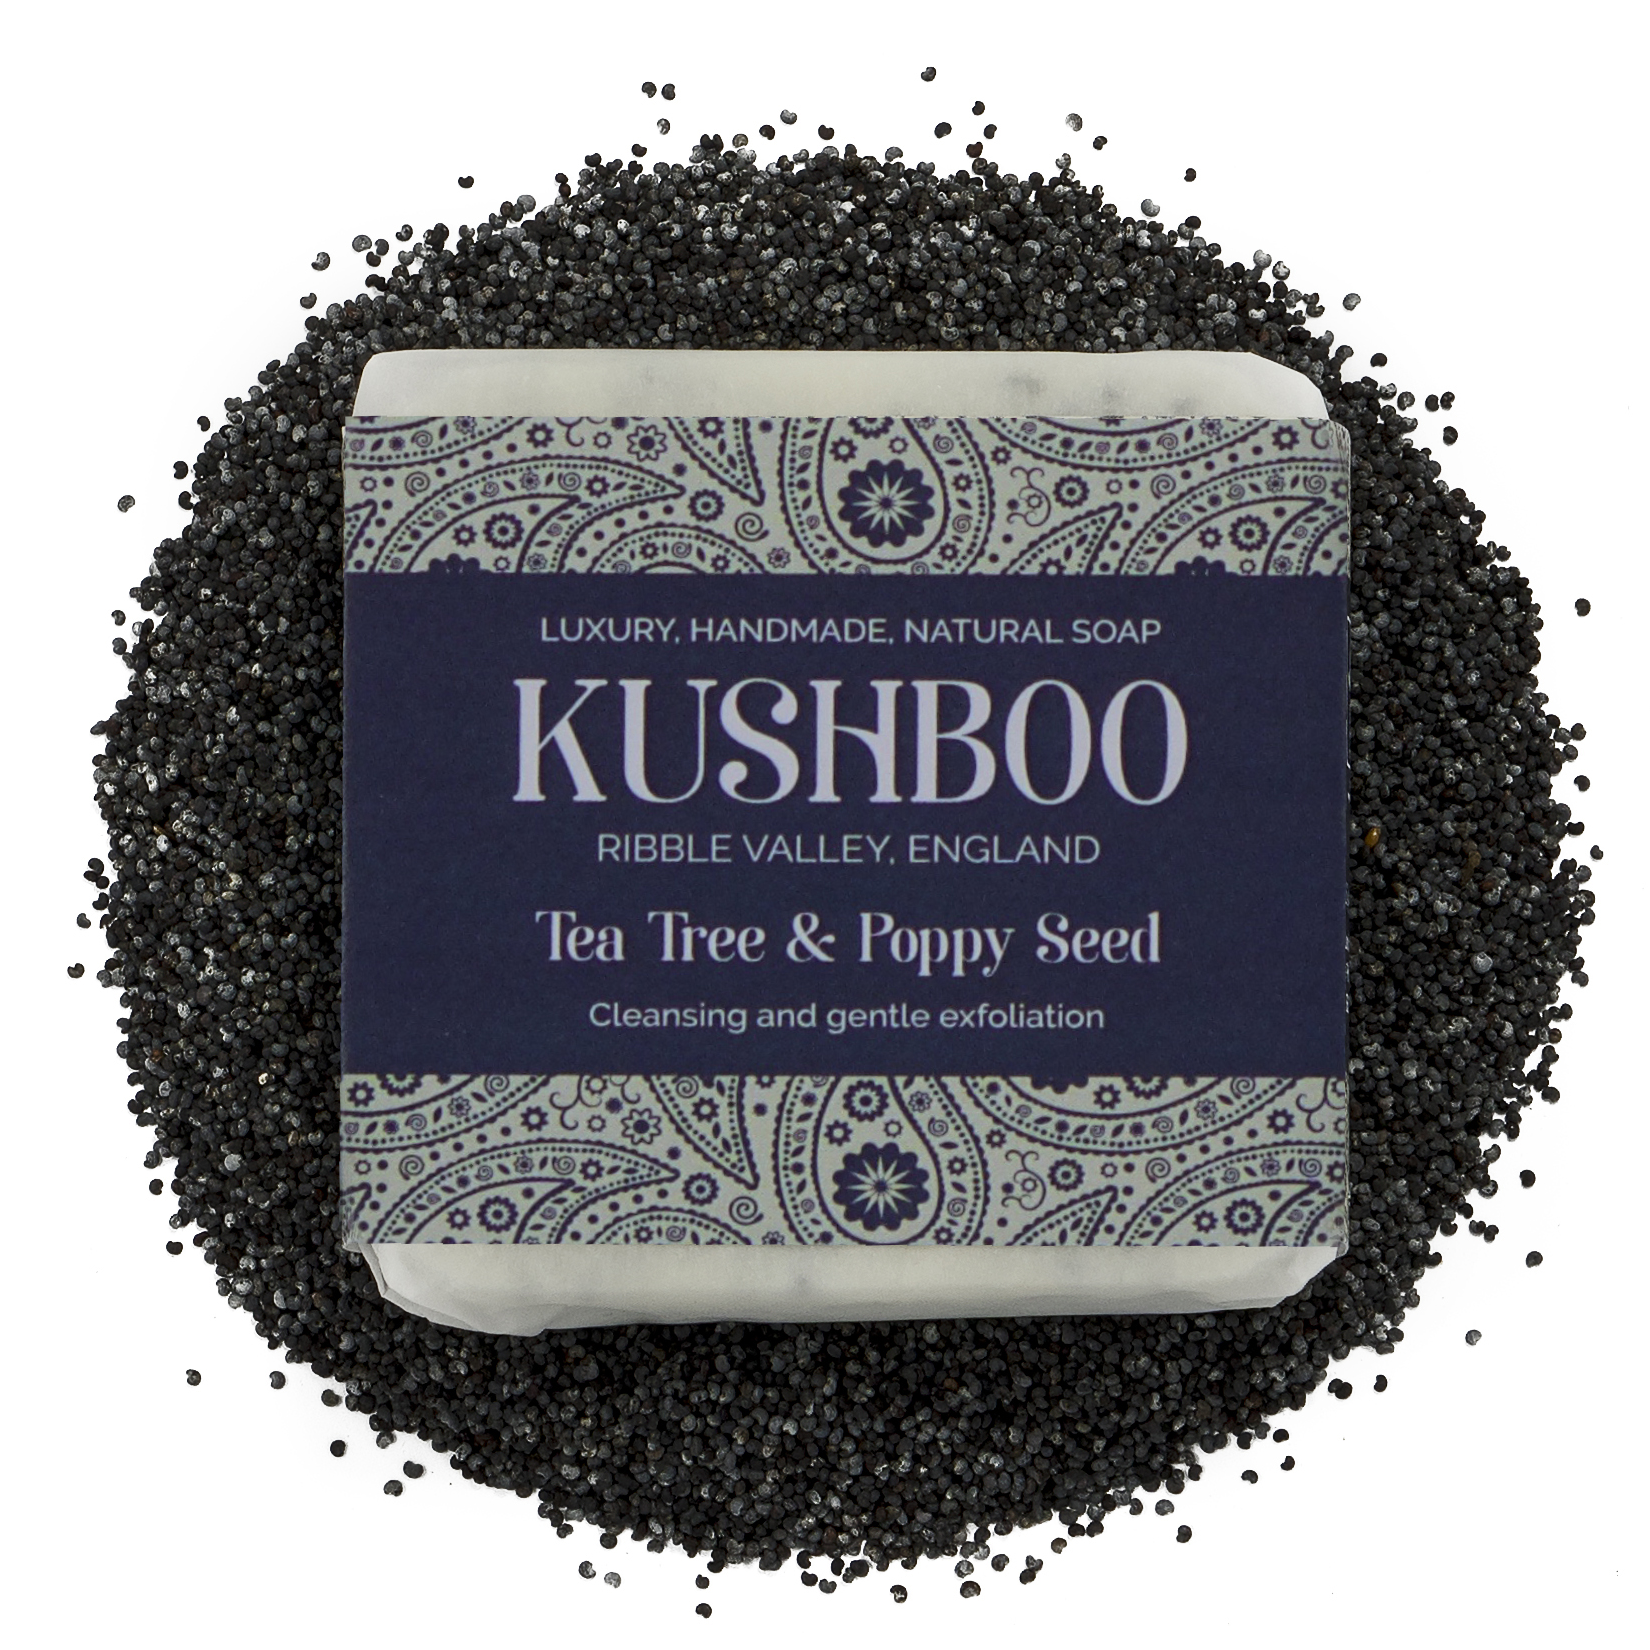 Kushboo Tea Tree and Poppy Seed Soap